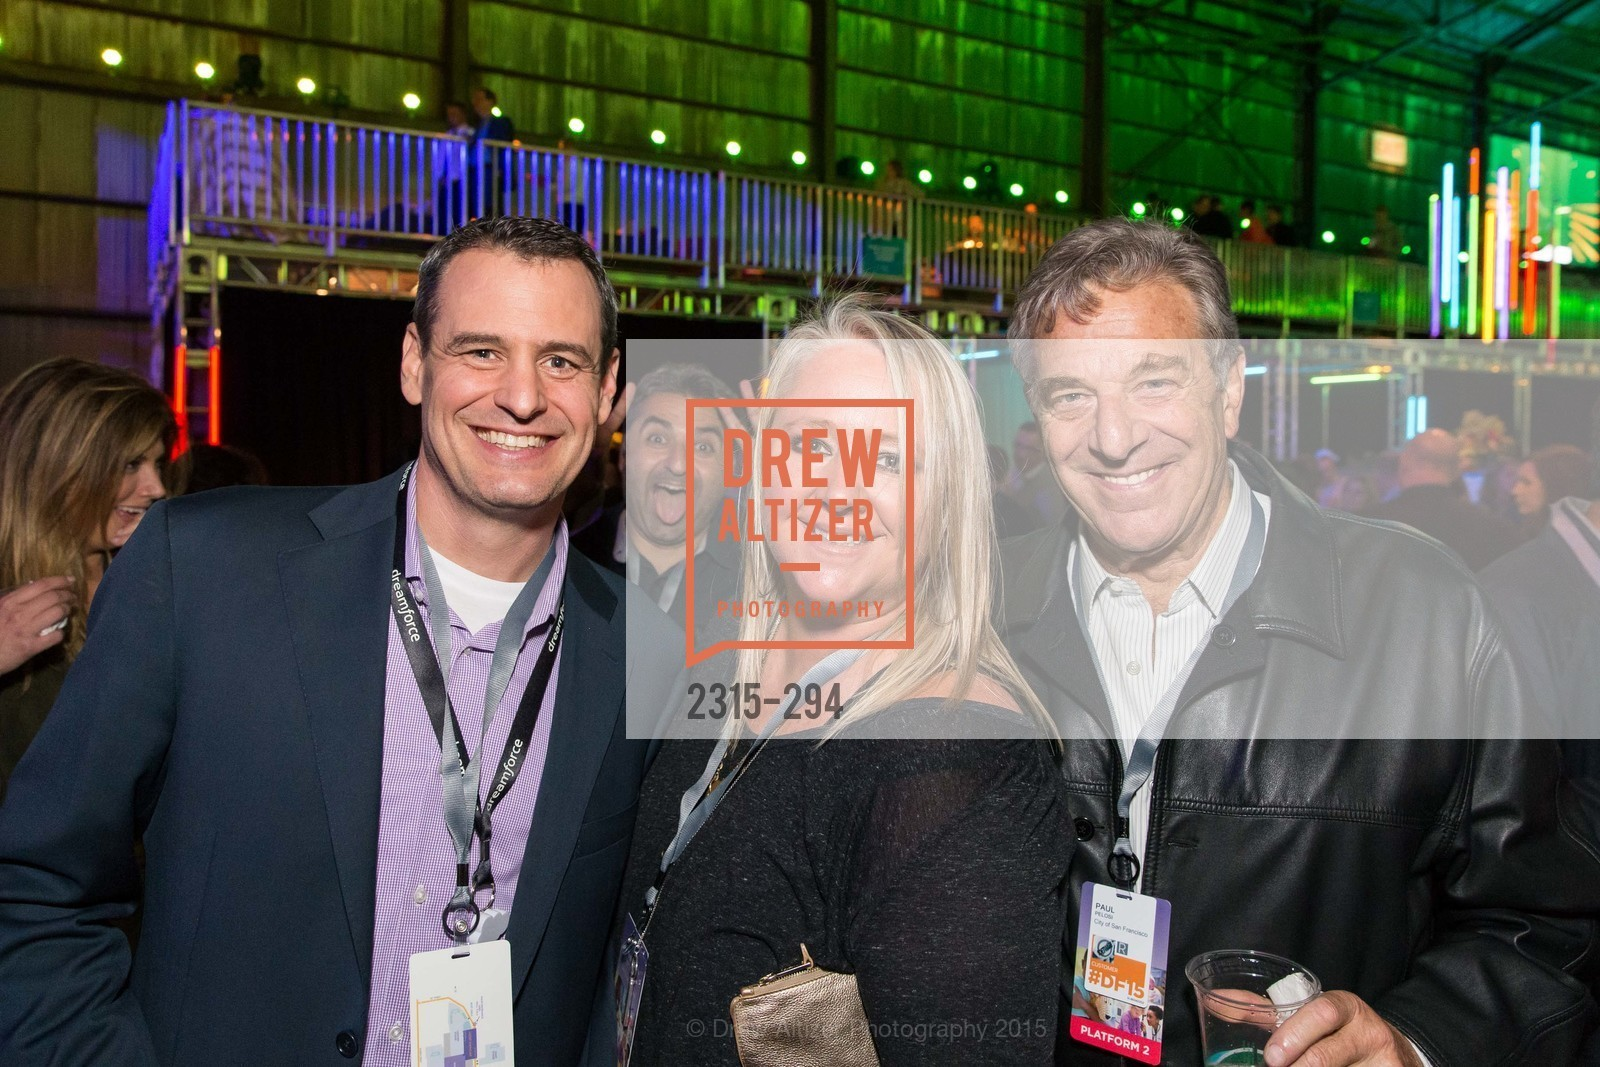 Rob Acker, Lori Puccinelli Stern, Paul Pelosi, The Concert For UCSF Benioff Children's Hospital, Pier 70, September 17th, 2015,Drew Altizer, Drew Altizer Photography, full-service agency, private events, San Francisco photographer, photographer california